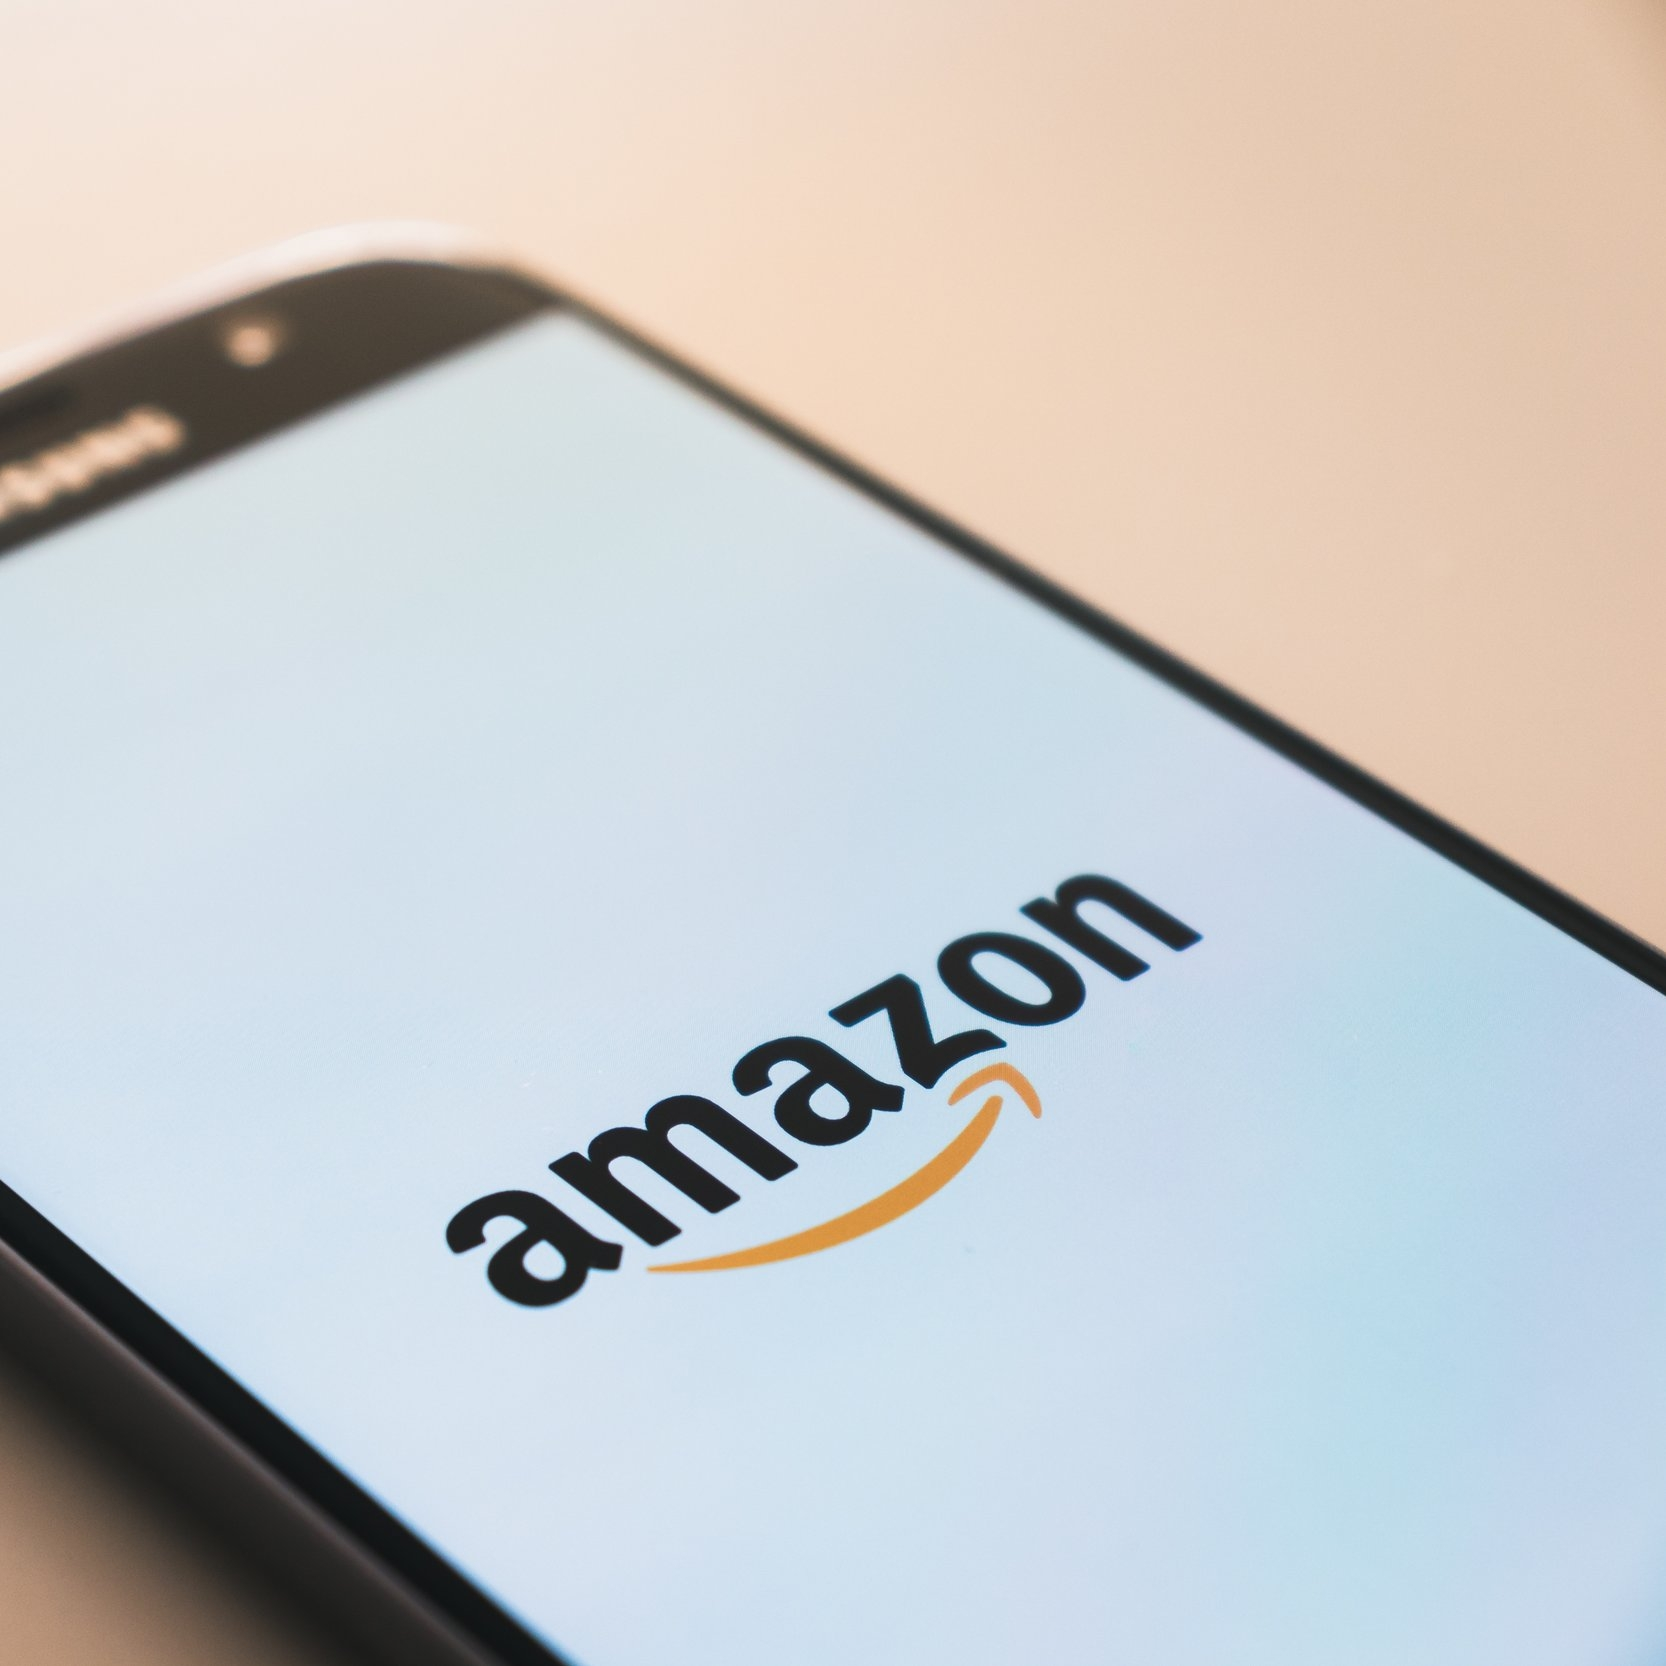 Amazon Seller Central - Over 50% of US consumer e-commerce shopping occurs on Amazon. We specialize in generating sales and building your brand on Amazon.